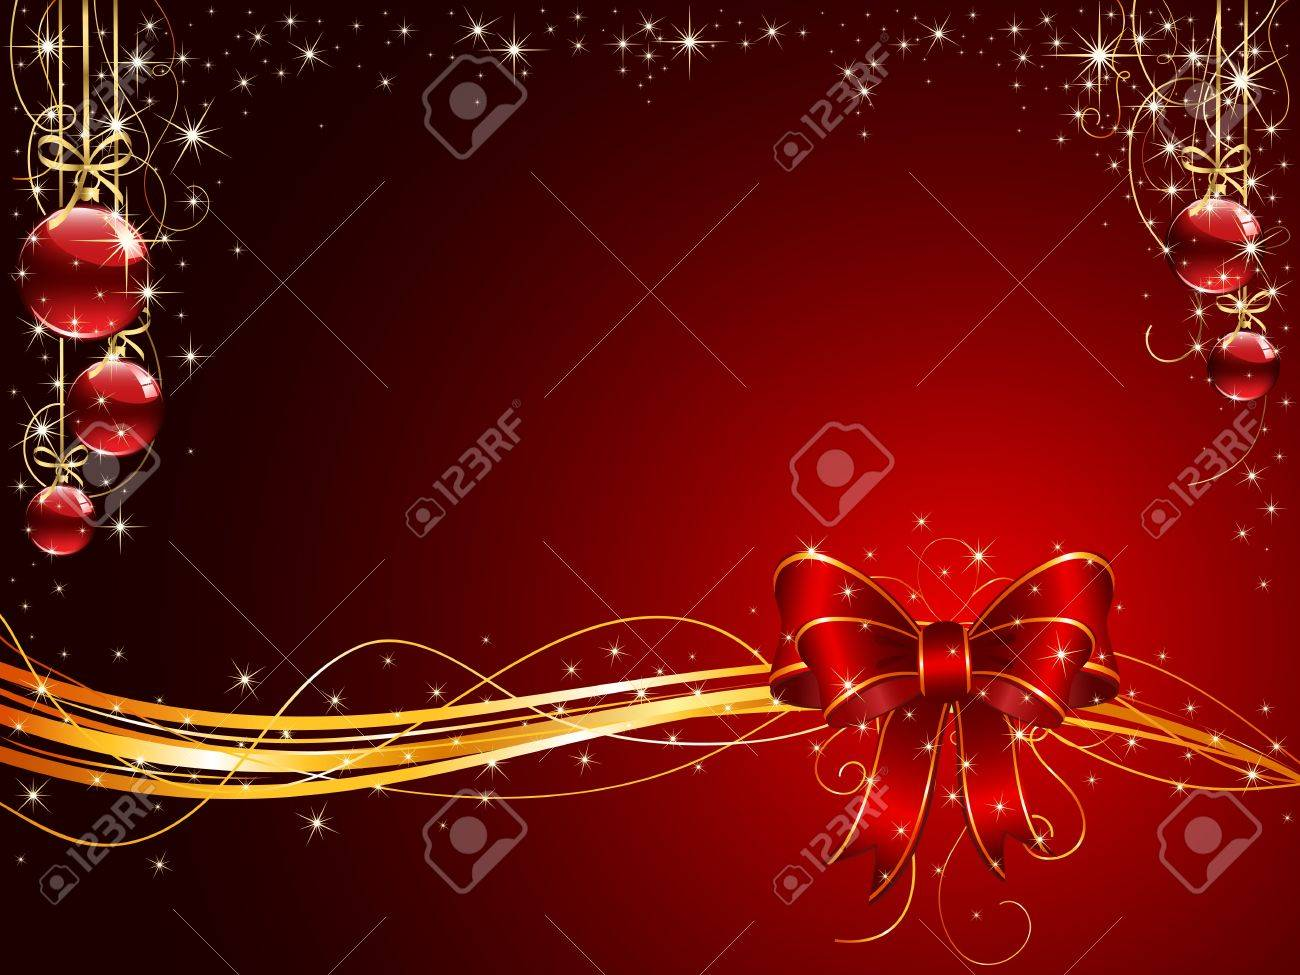 Background with red bow and Christmas balls, illustration Stock Vector - 9635282